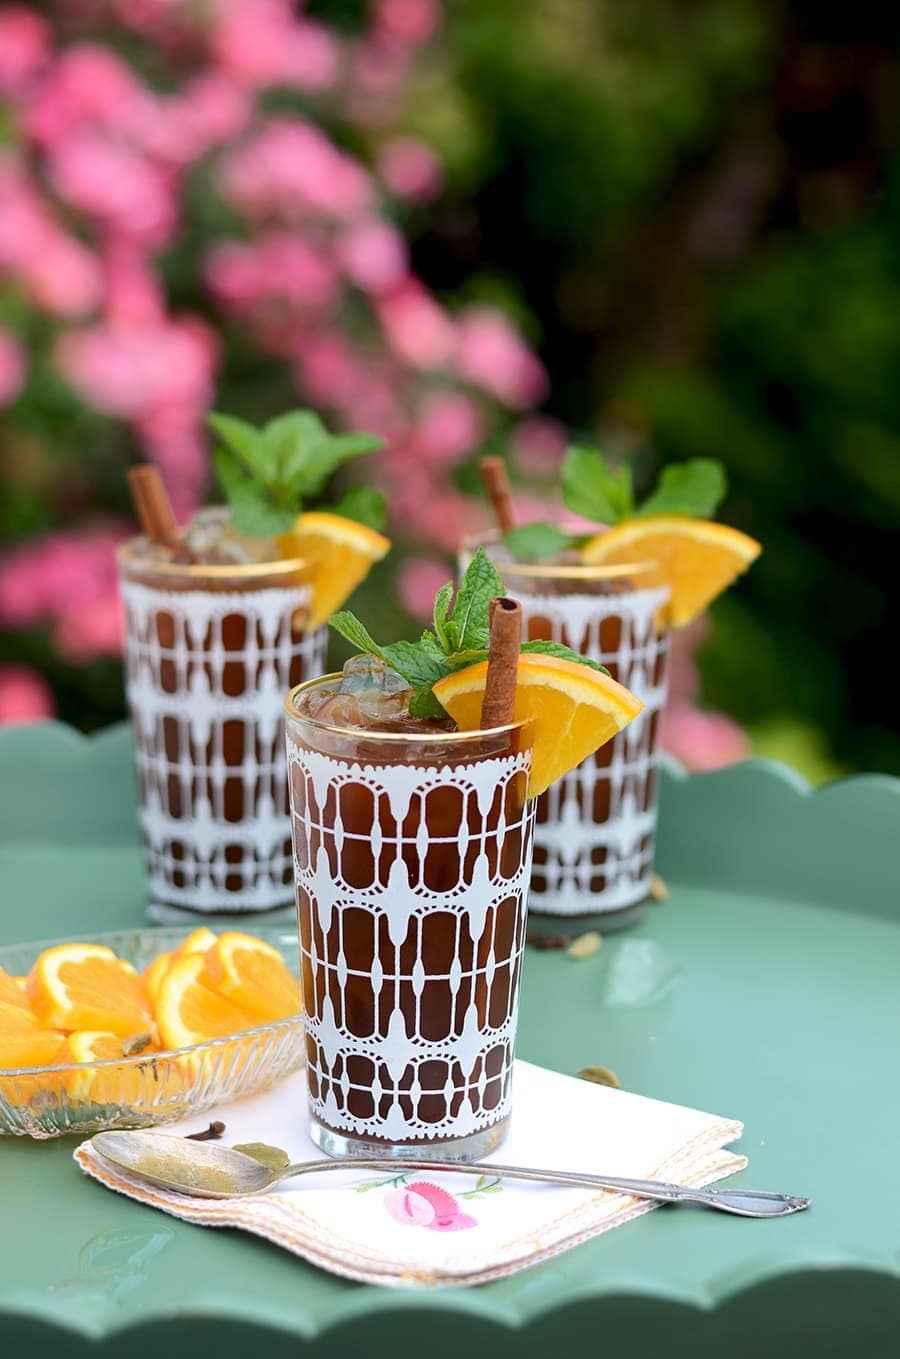 Vintage glasses filled with chai iced tea and garnished with oranges, fresh mint and cinnamon sticks